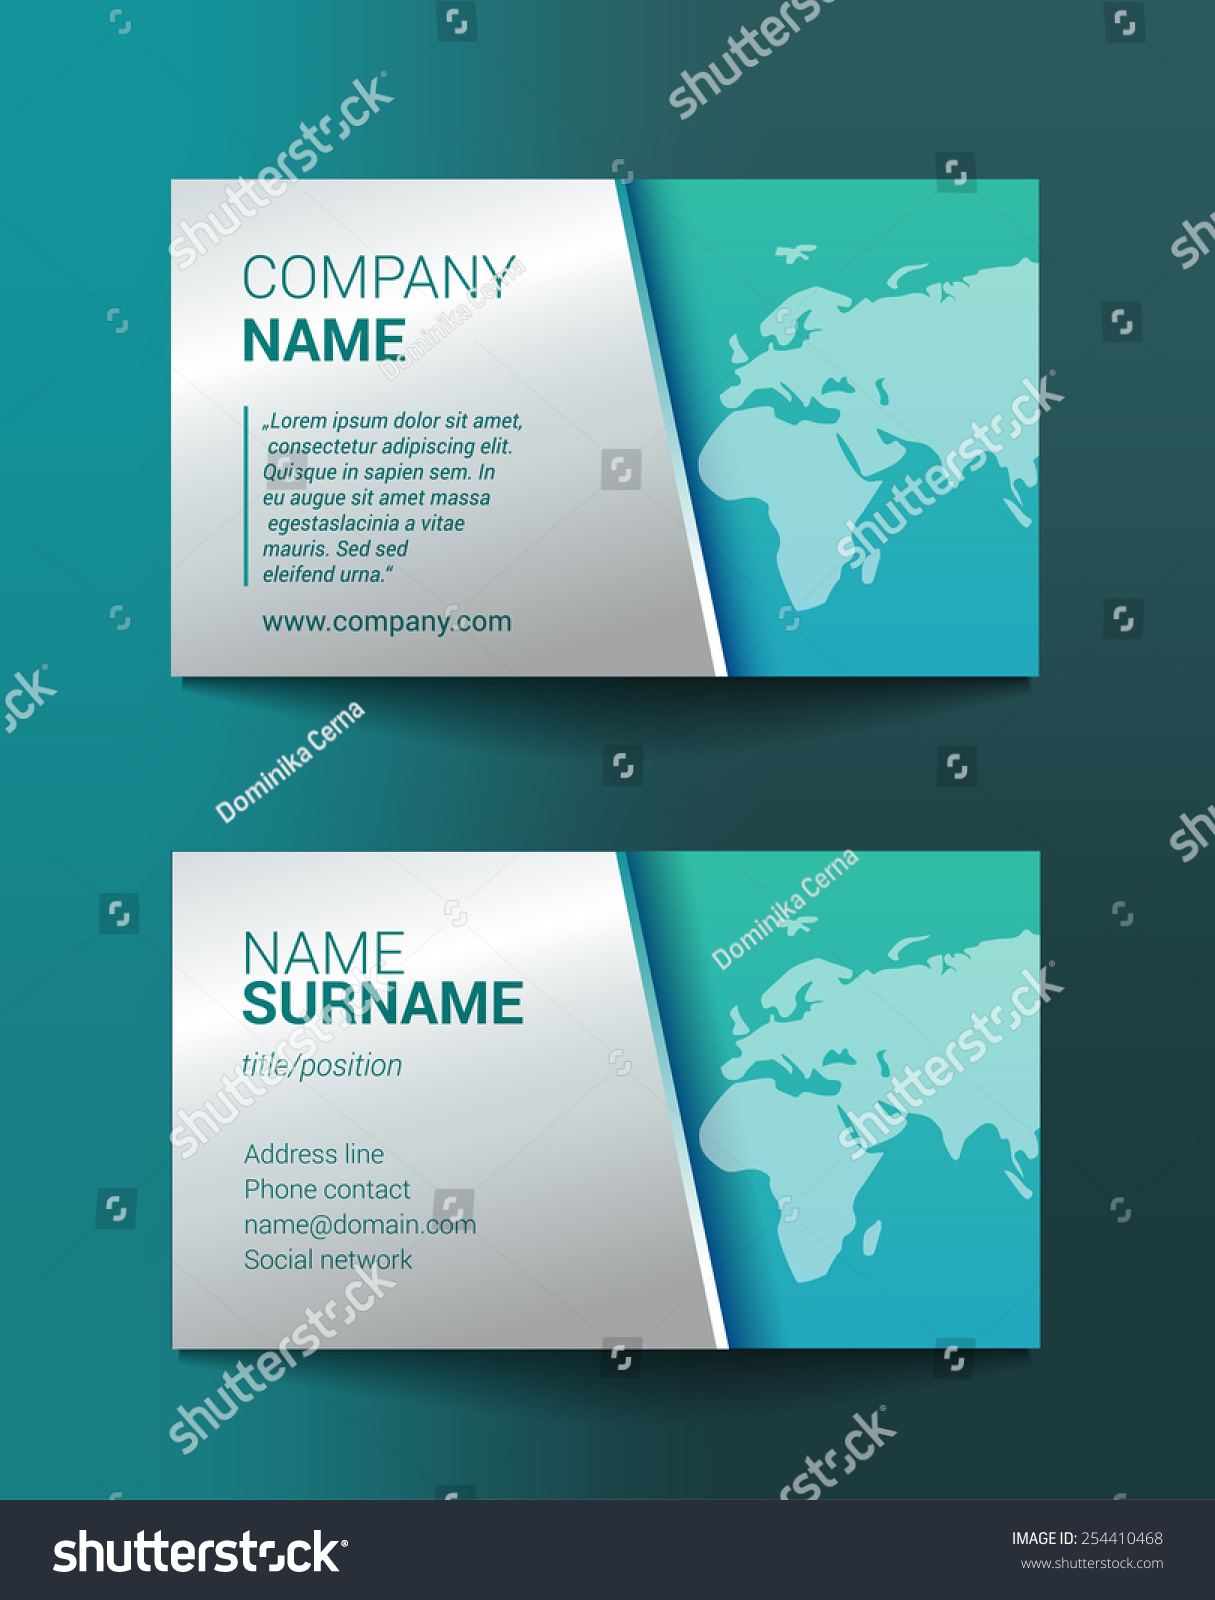 Business Card Template World Map Stock Vector 254410468 - Shutterstock